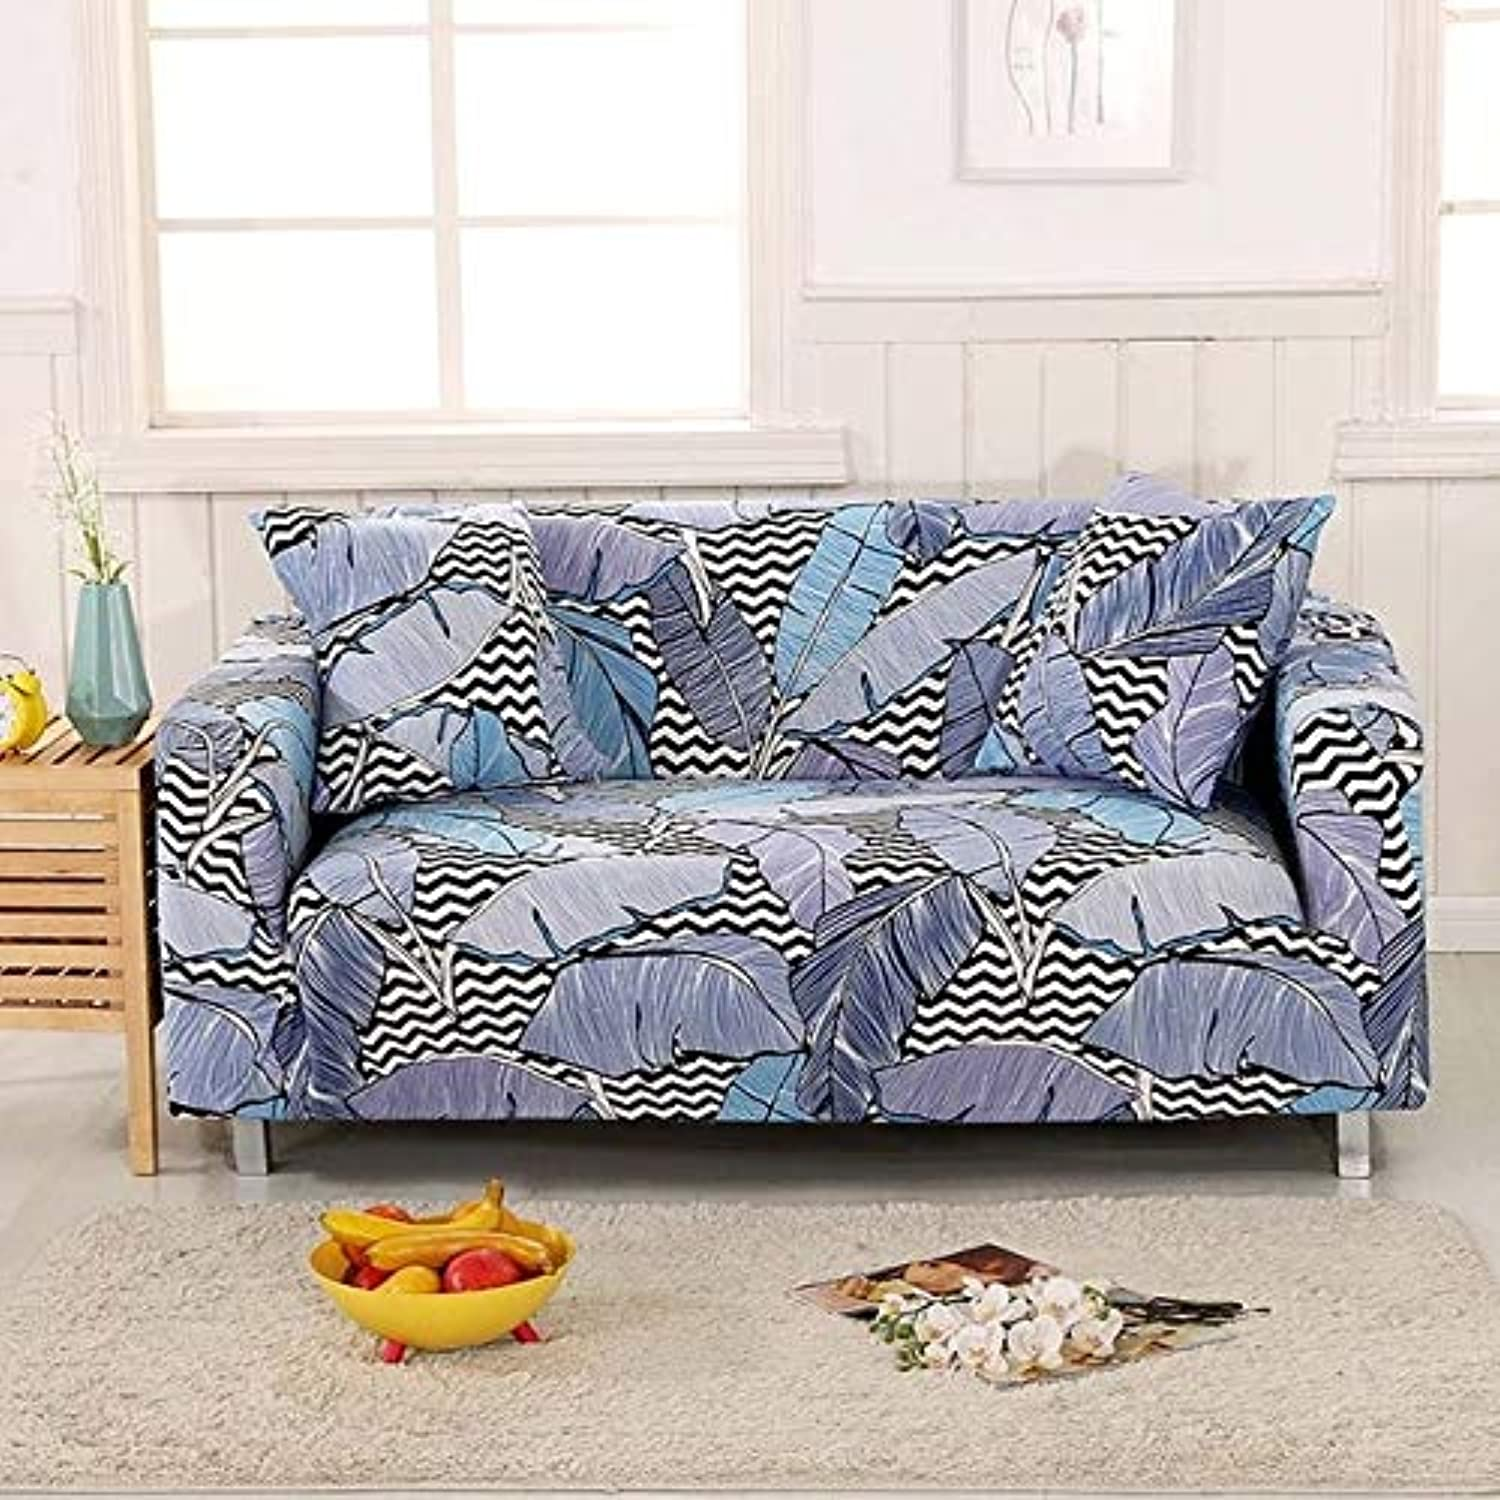 Fashion SofacoverTight Wrap All-Inclusive Slip-Resistant Sofa Covers Sofa Towel Elastic Couch Cover Single Two Three Four-Seater   05, Two-seat